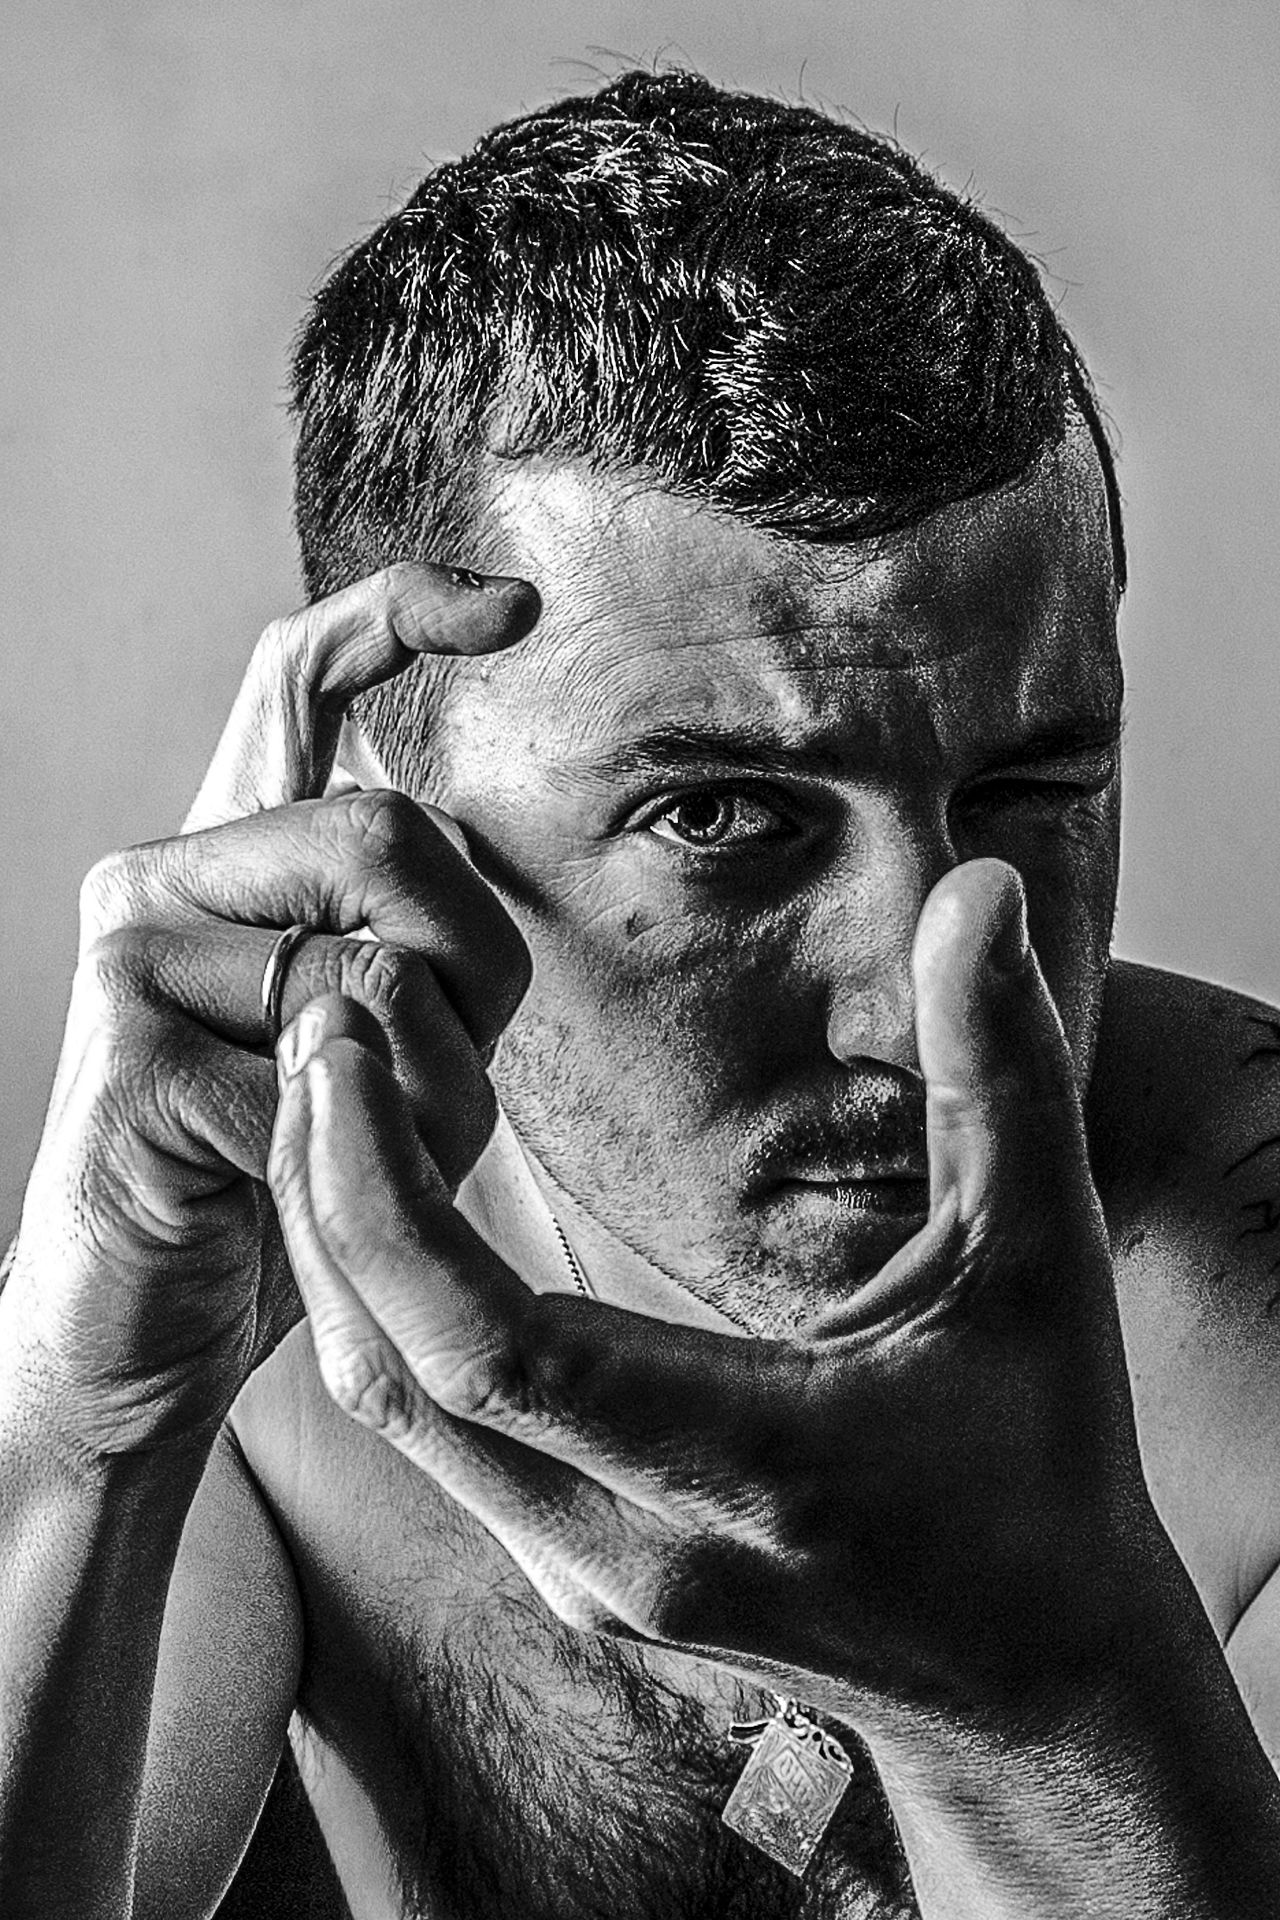 Auto Retrato Black And White Blanco Y Negro Headshot Human Body Part Human Face Human Hand One Person People Self Portrait EyeEmNewHere EyeEmNewHere